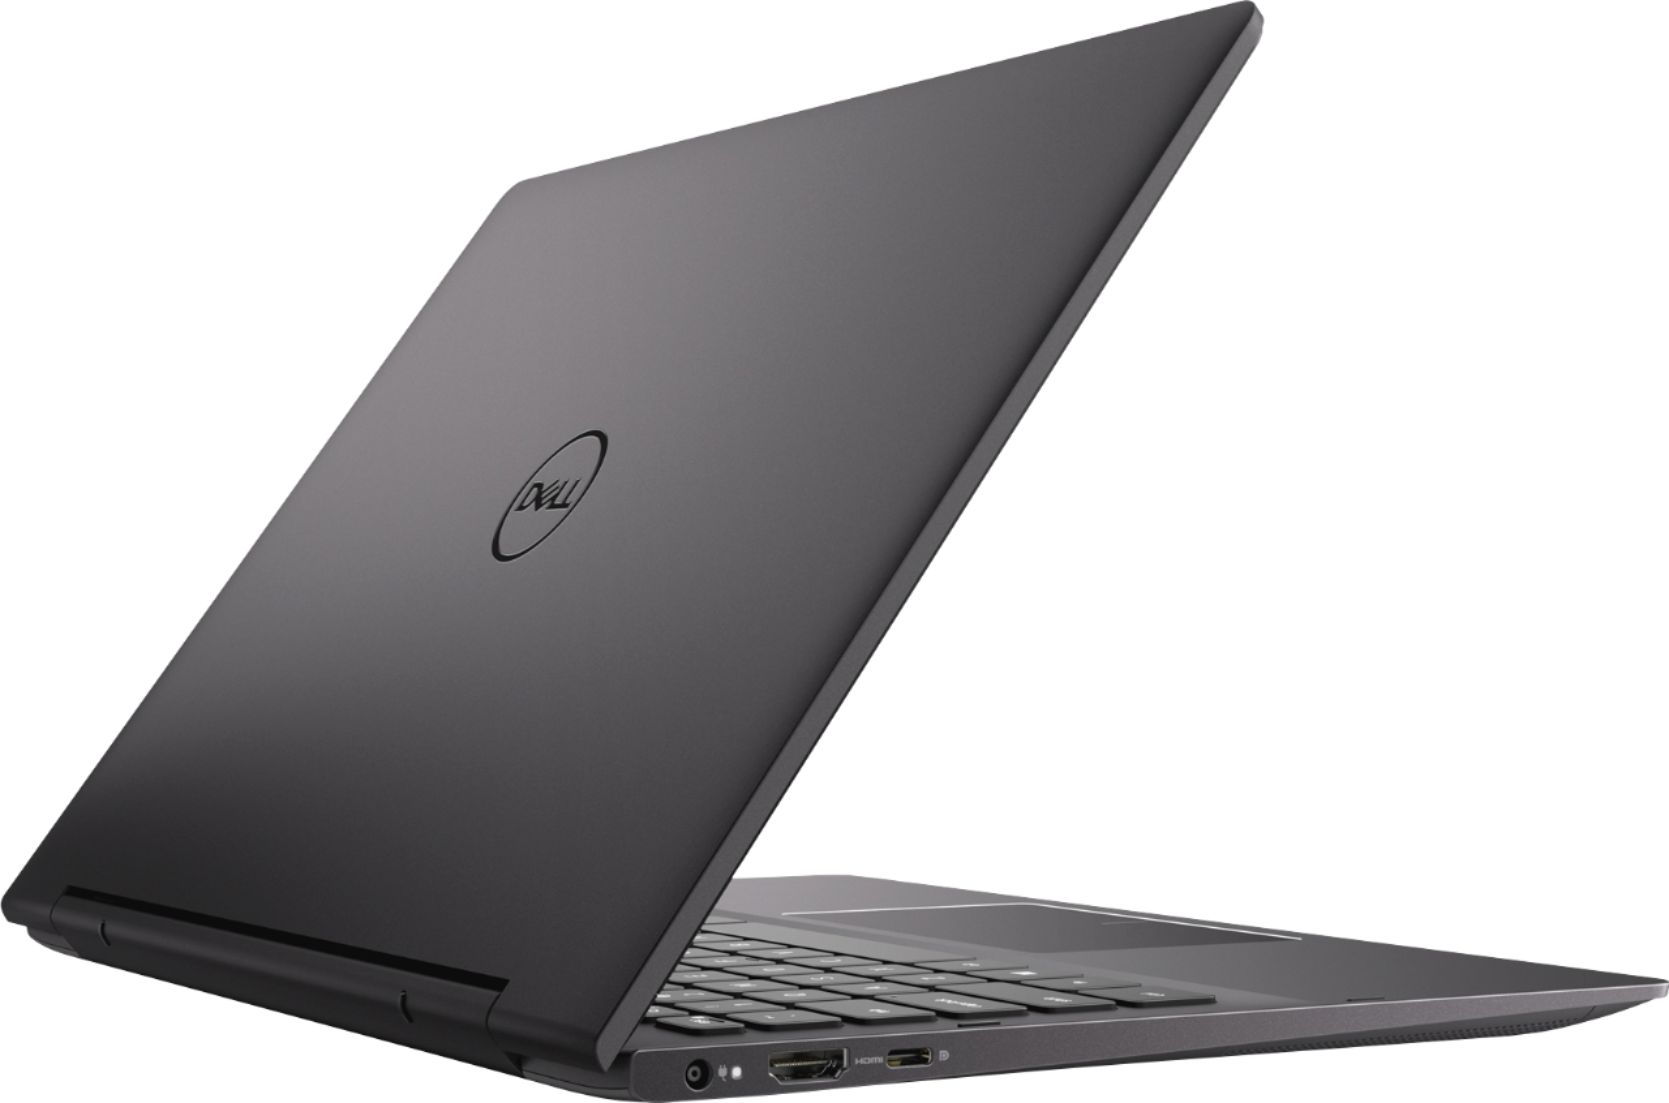 "Alt View Zoom 11. Dell - Inspiron 13.3"" Geek Squad Certified Refurbished 4K Ultra HD Touch-Screen Laptop Intel Core i7 16GB Memory 512GB SSD - Black."